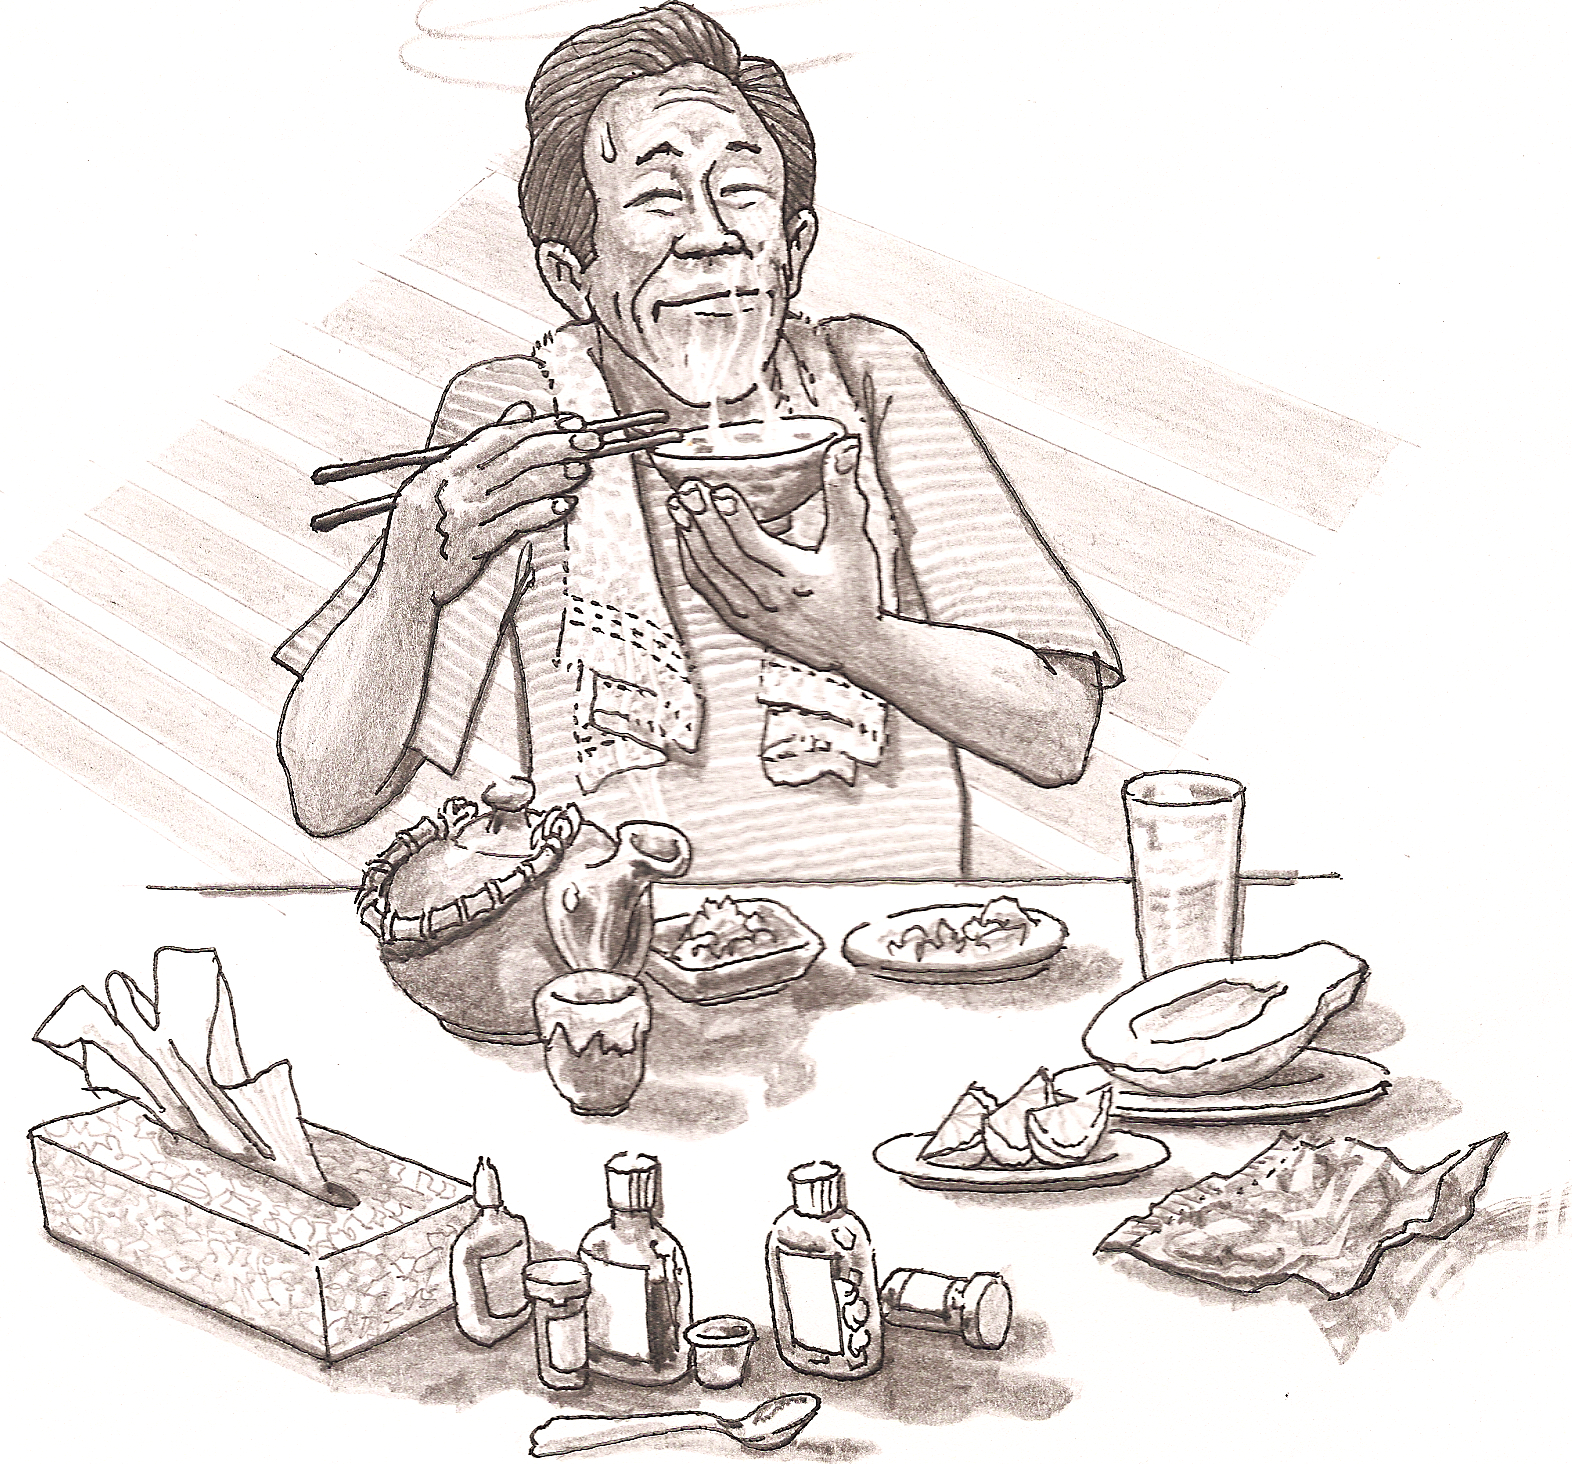 Graphic of a man eating meal with chopsticks, enjoying the aroma of his bowl of soup